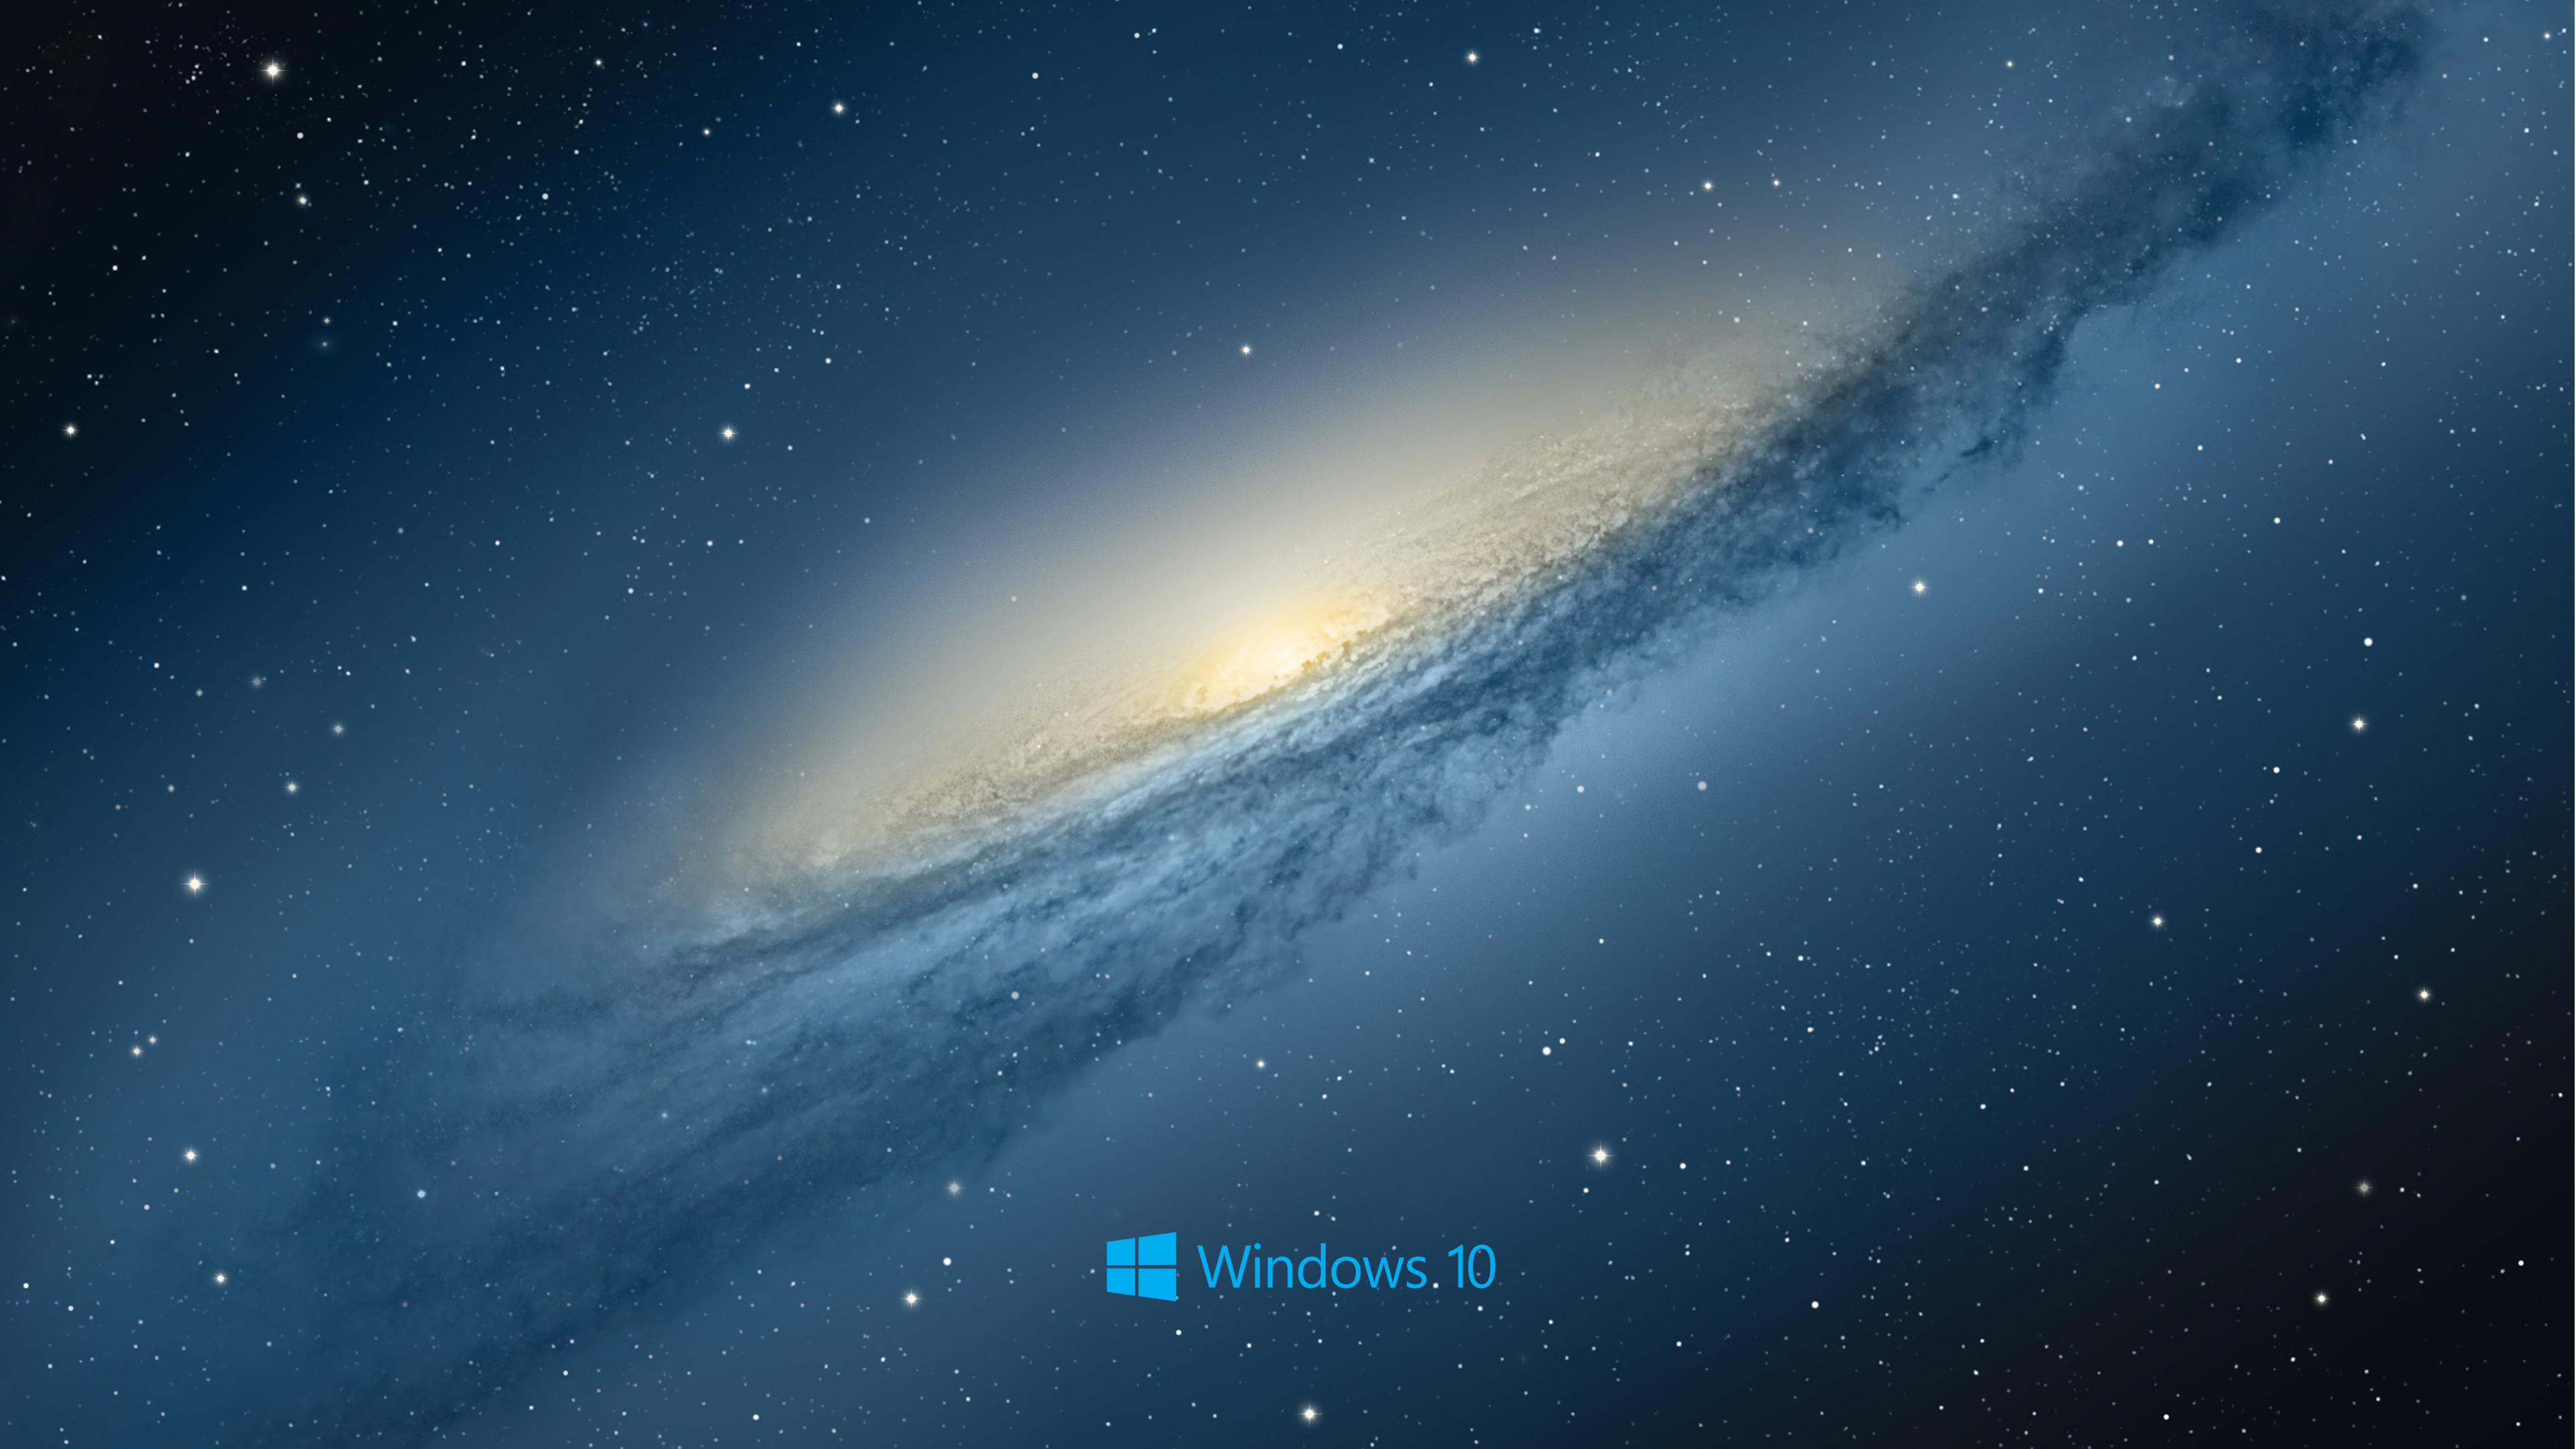 windows 10 desktop wallpaper with scientific space planet galaxy